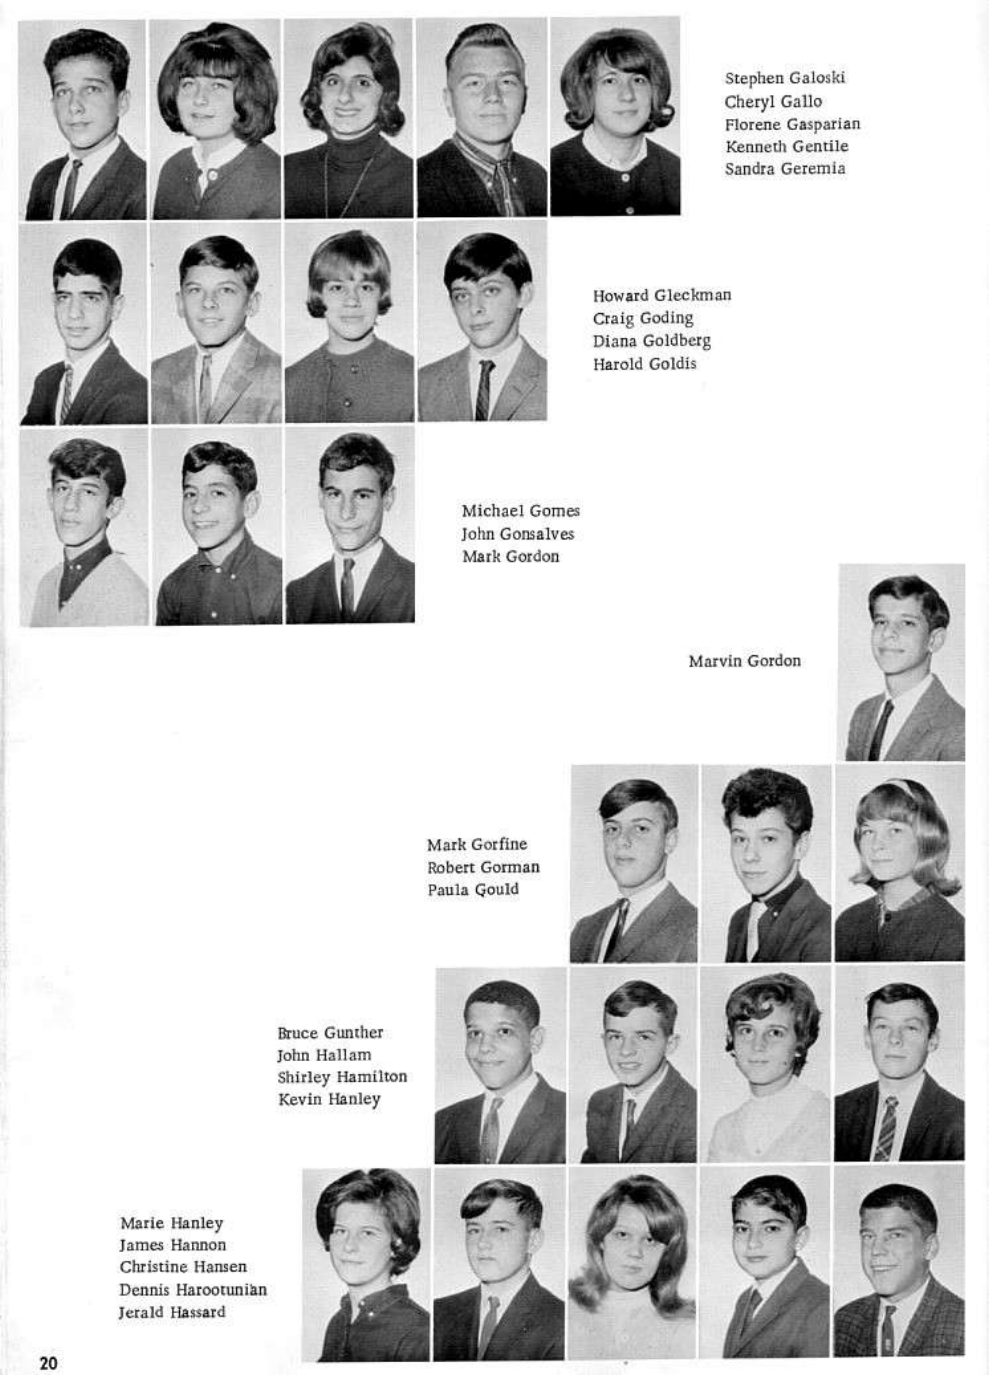 the cranston east class of park view echo year book galoski hassard